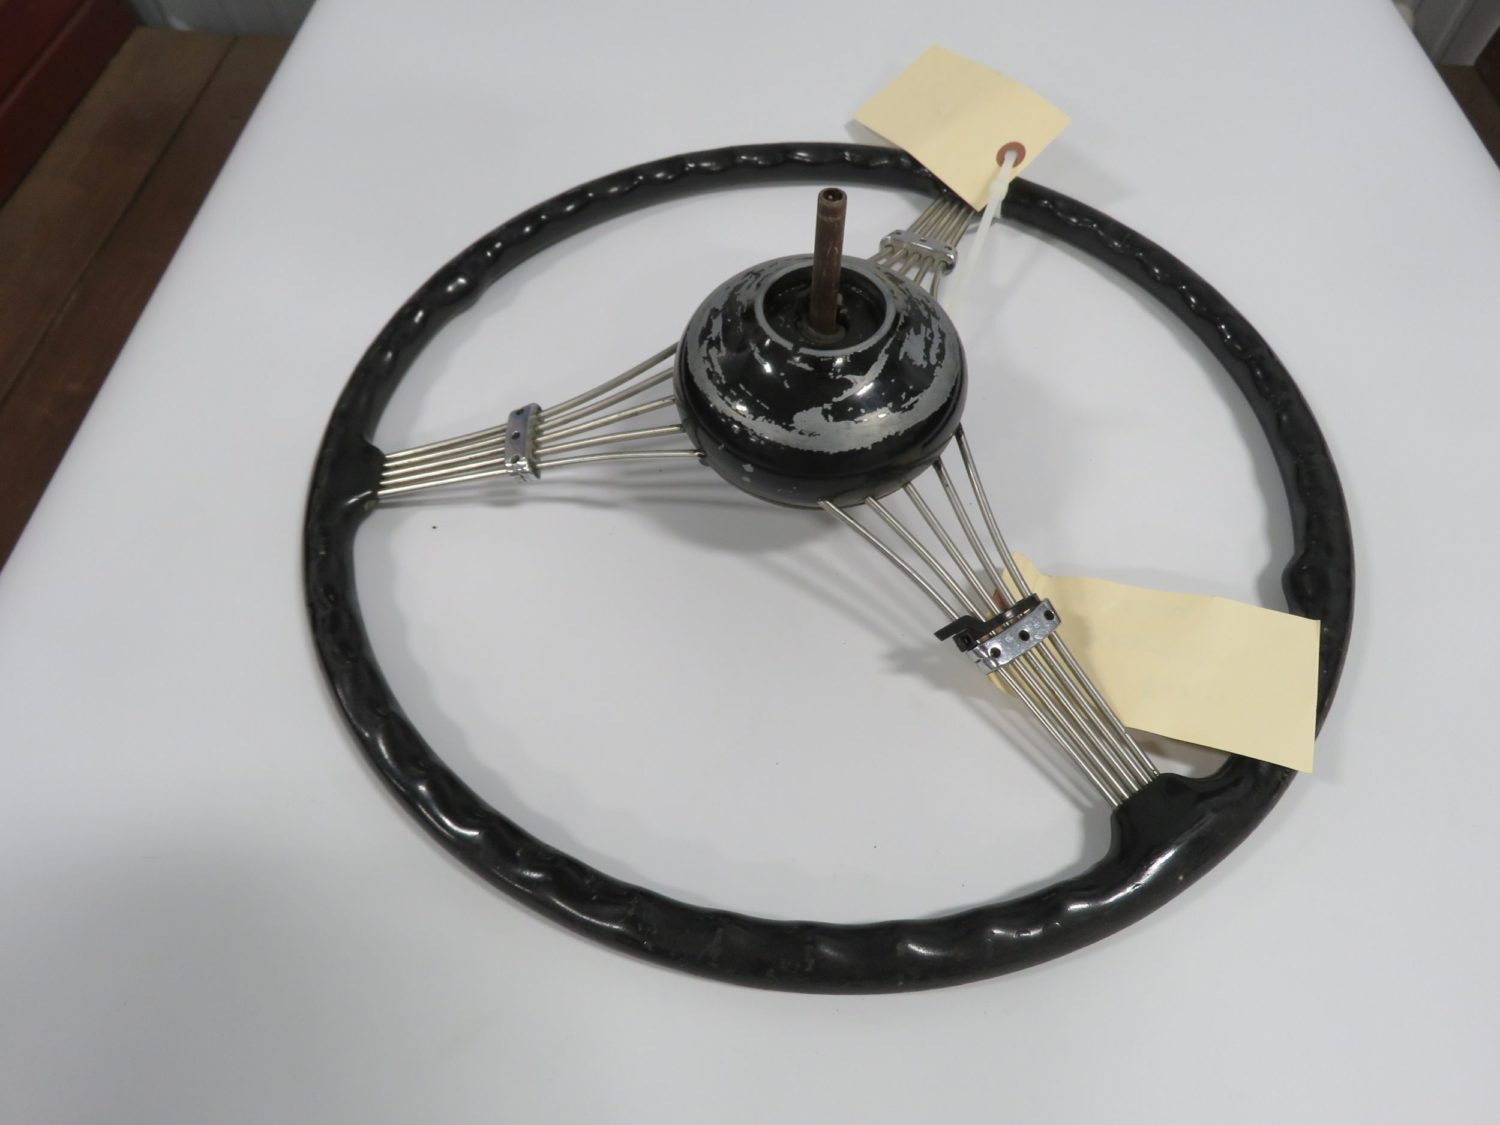 1939 Ford Banjo Steering wheel w/Horn Button - Image 2